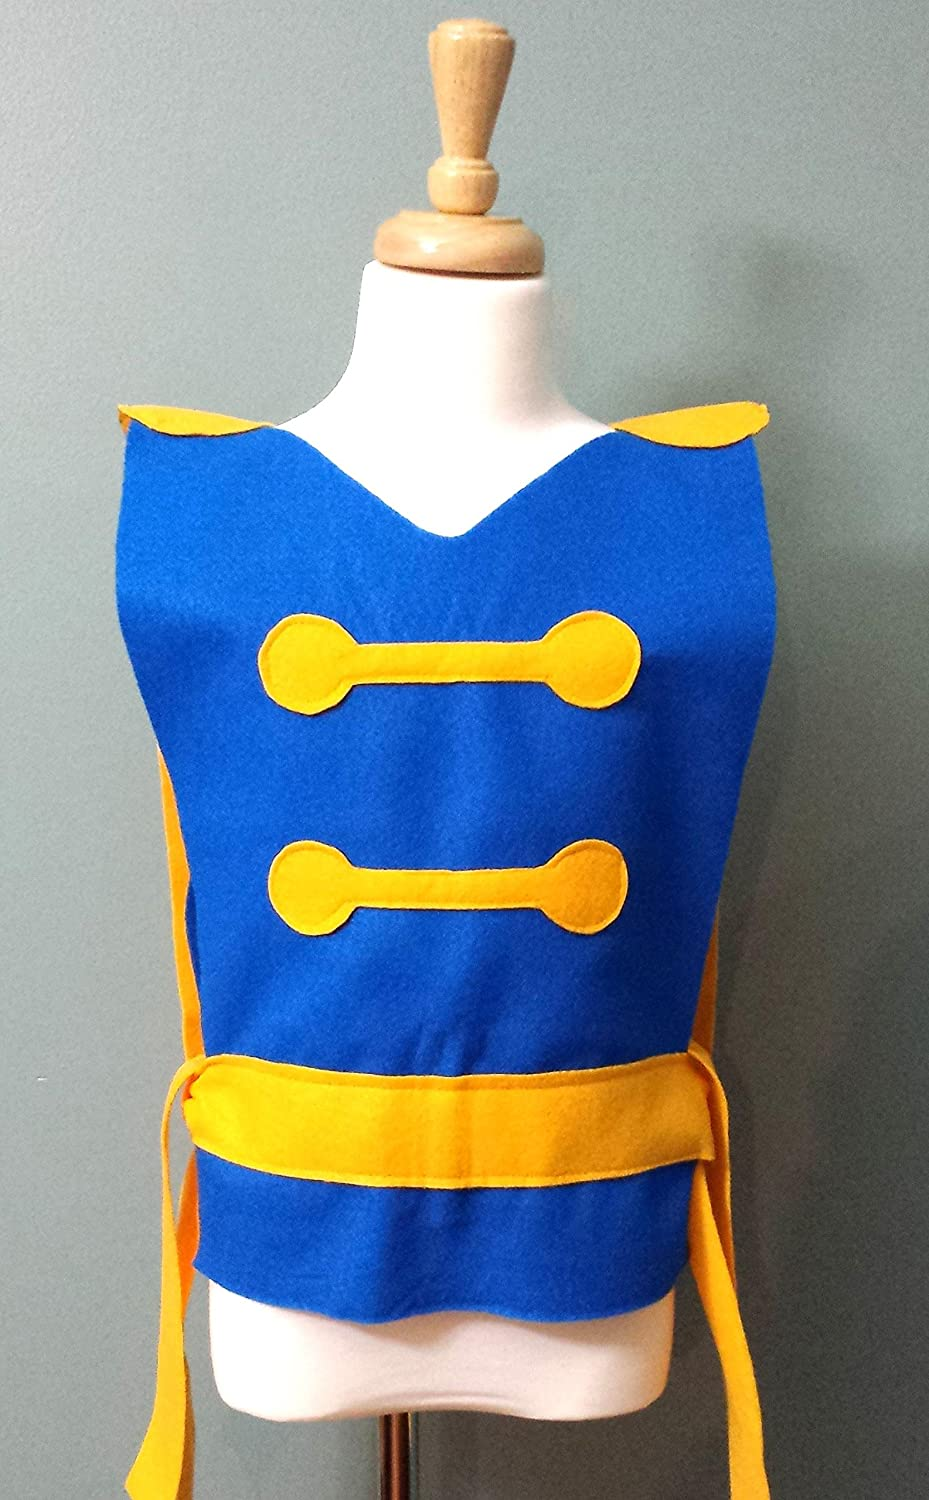 Baby Beast Costume Tunic (Belle's Prince/Beauty and the Beast/Prince Adam) - Baby/Toddler/Kids/Teen/Adult Sizes